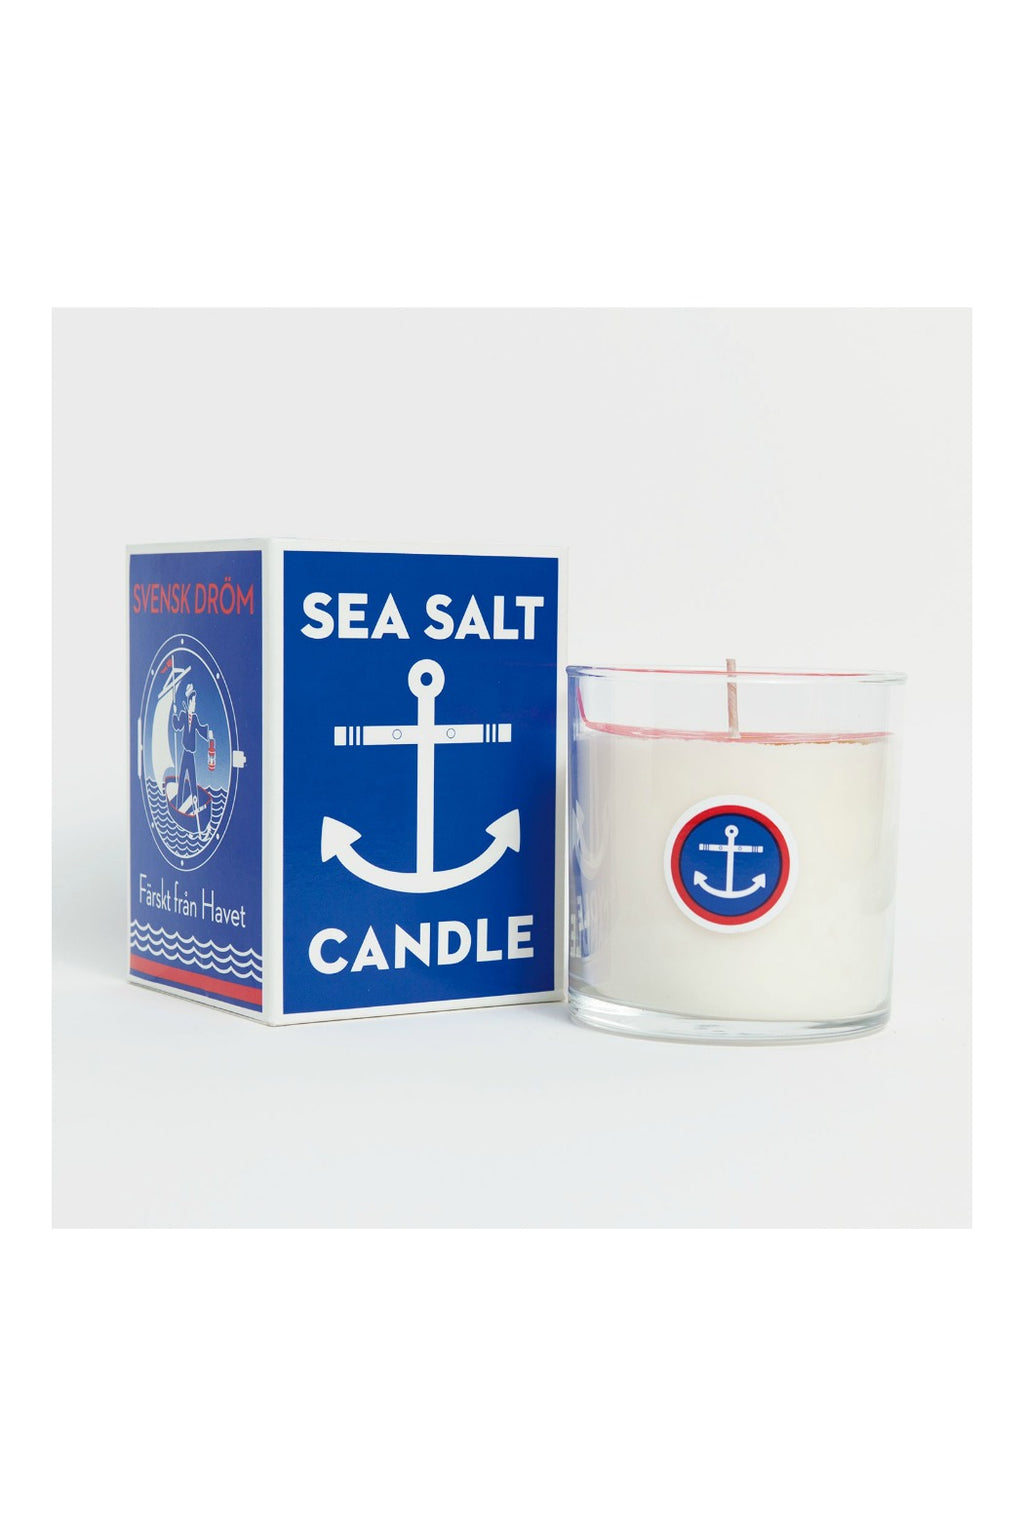 Kala Style Swedish Dream Candle - Sea Salt